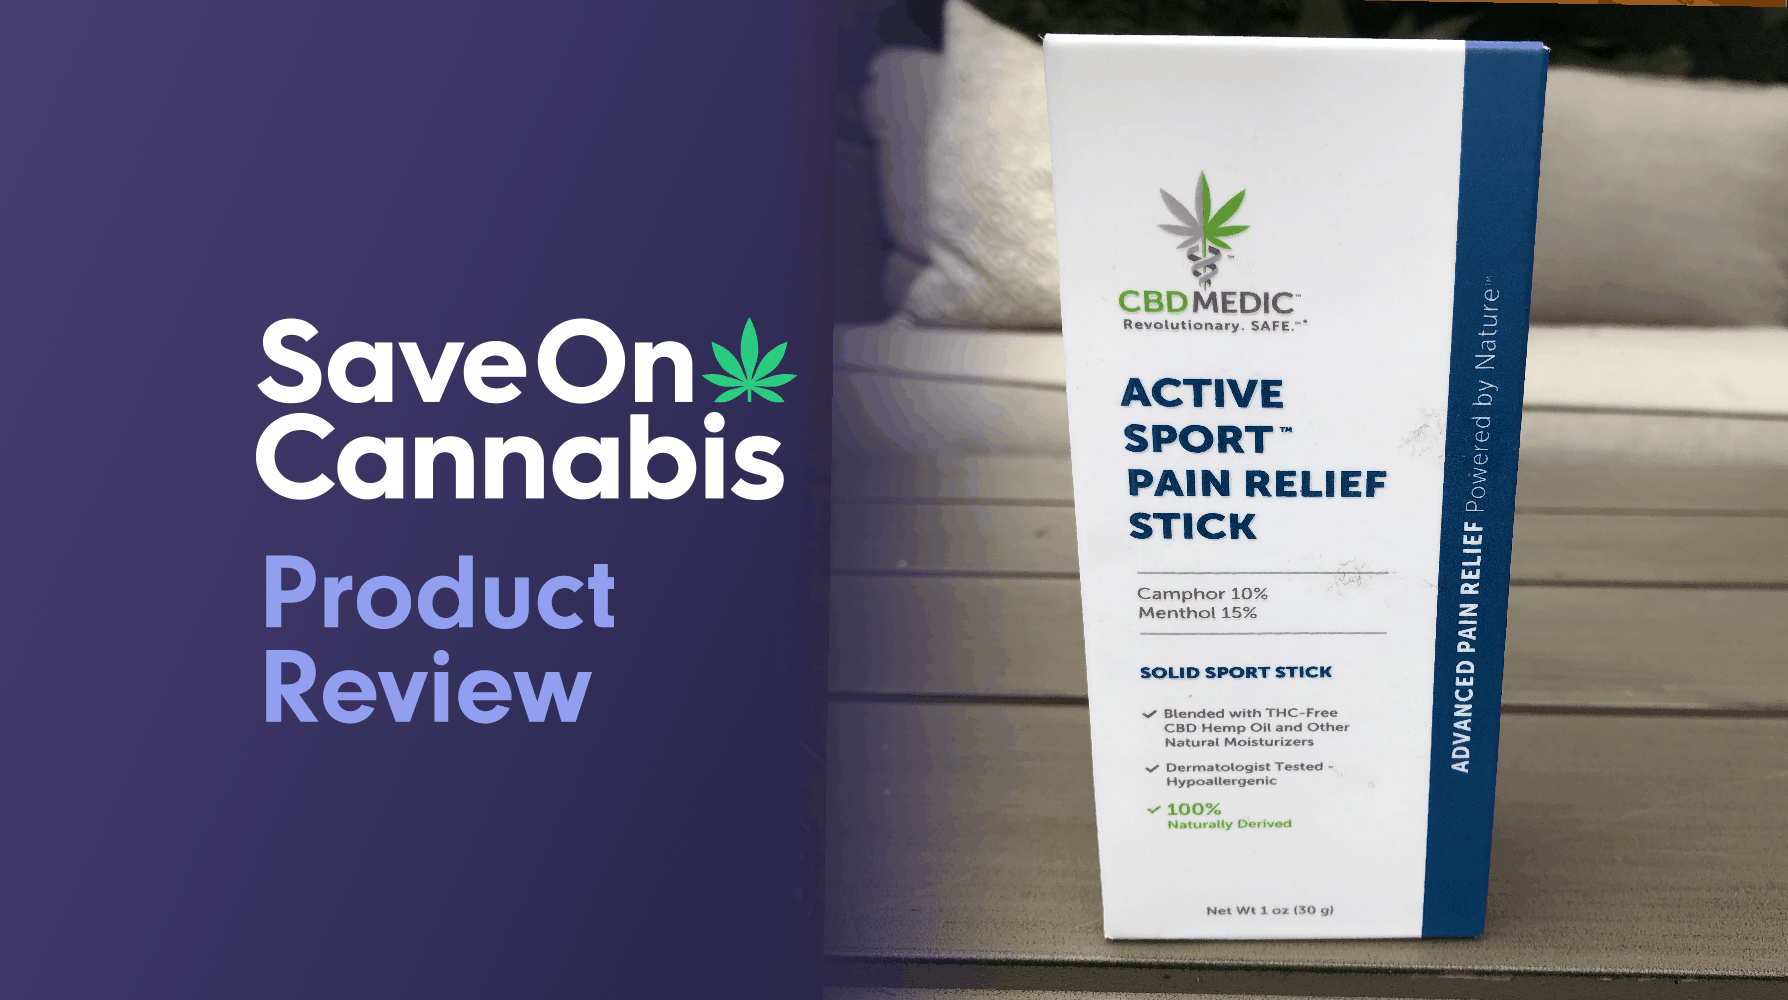 cbdmedic active sport pain relief stick review save on cannabis website